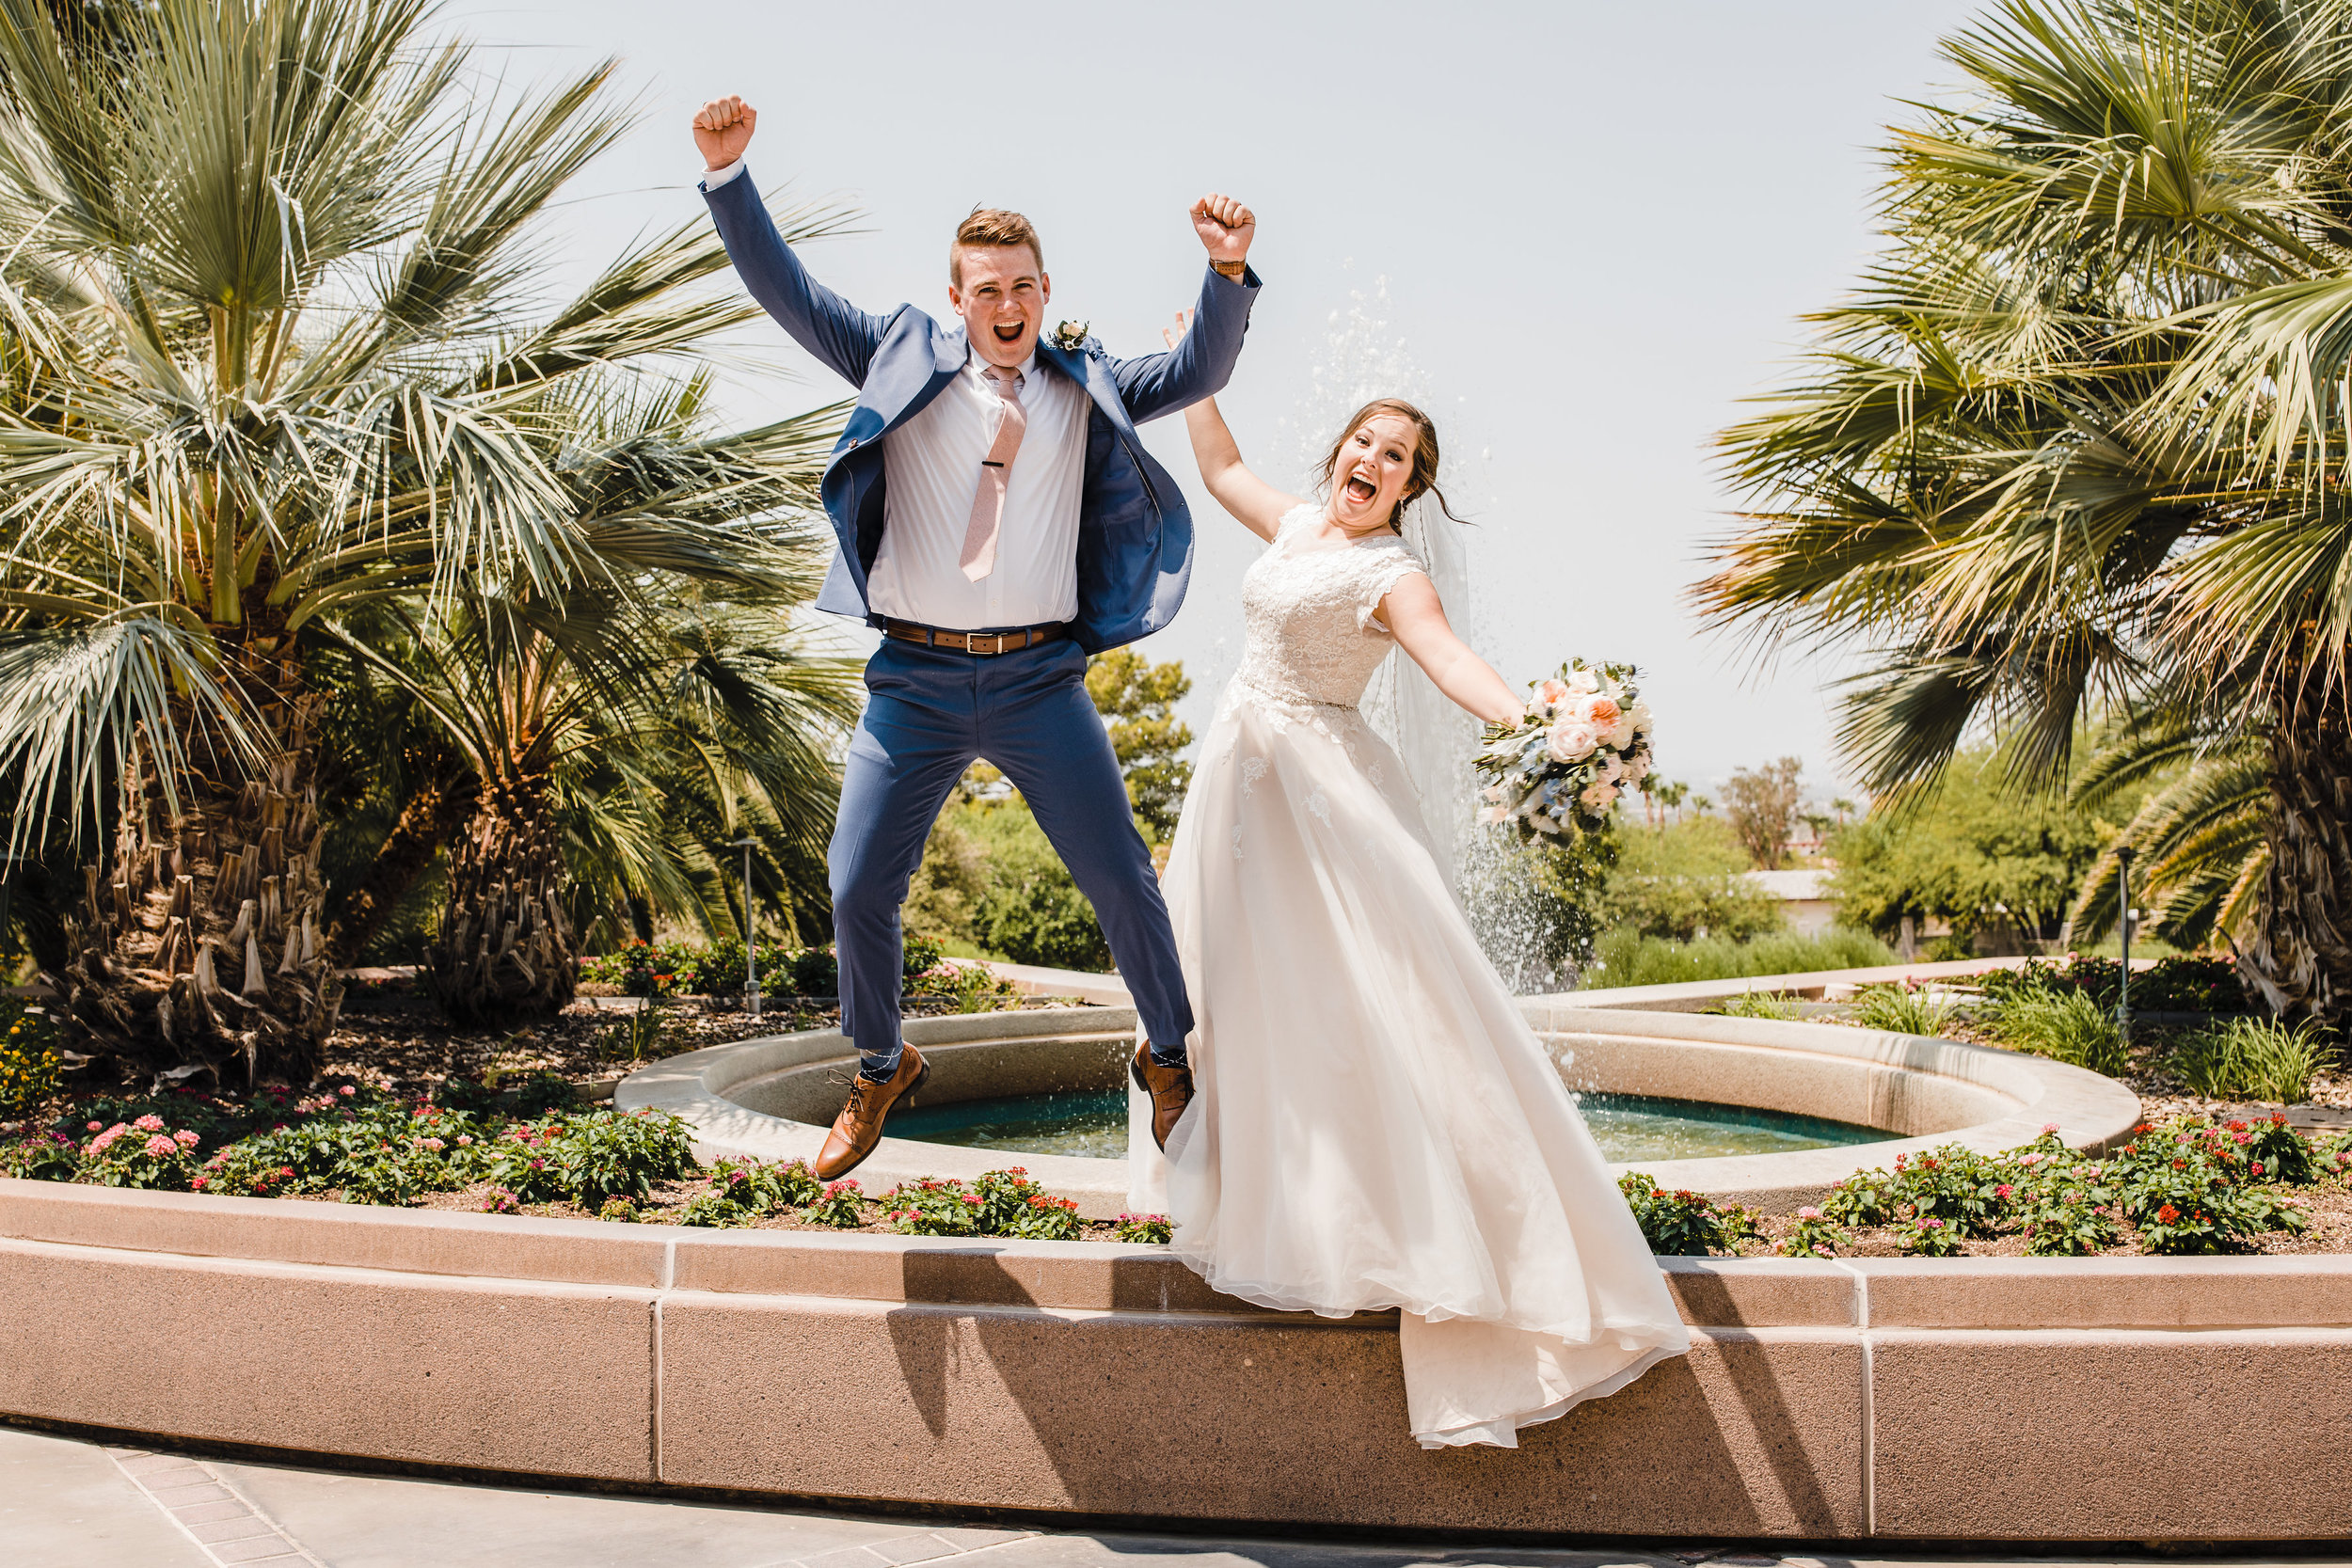 professional las vegas wedding photographer cheering jumping hands up